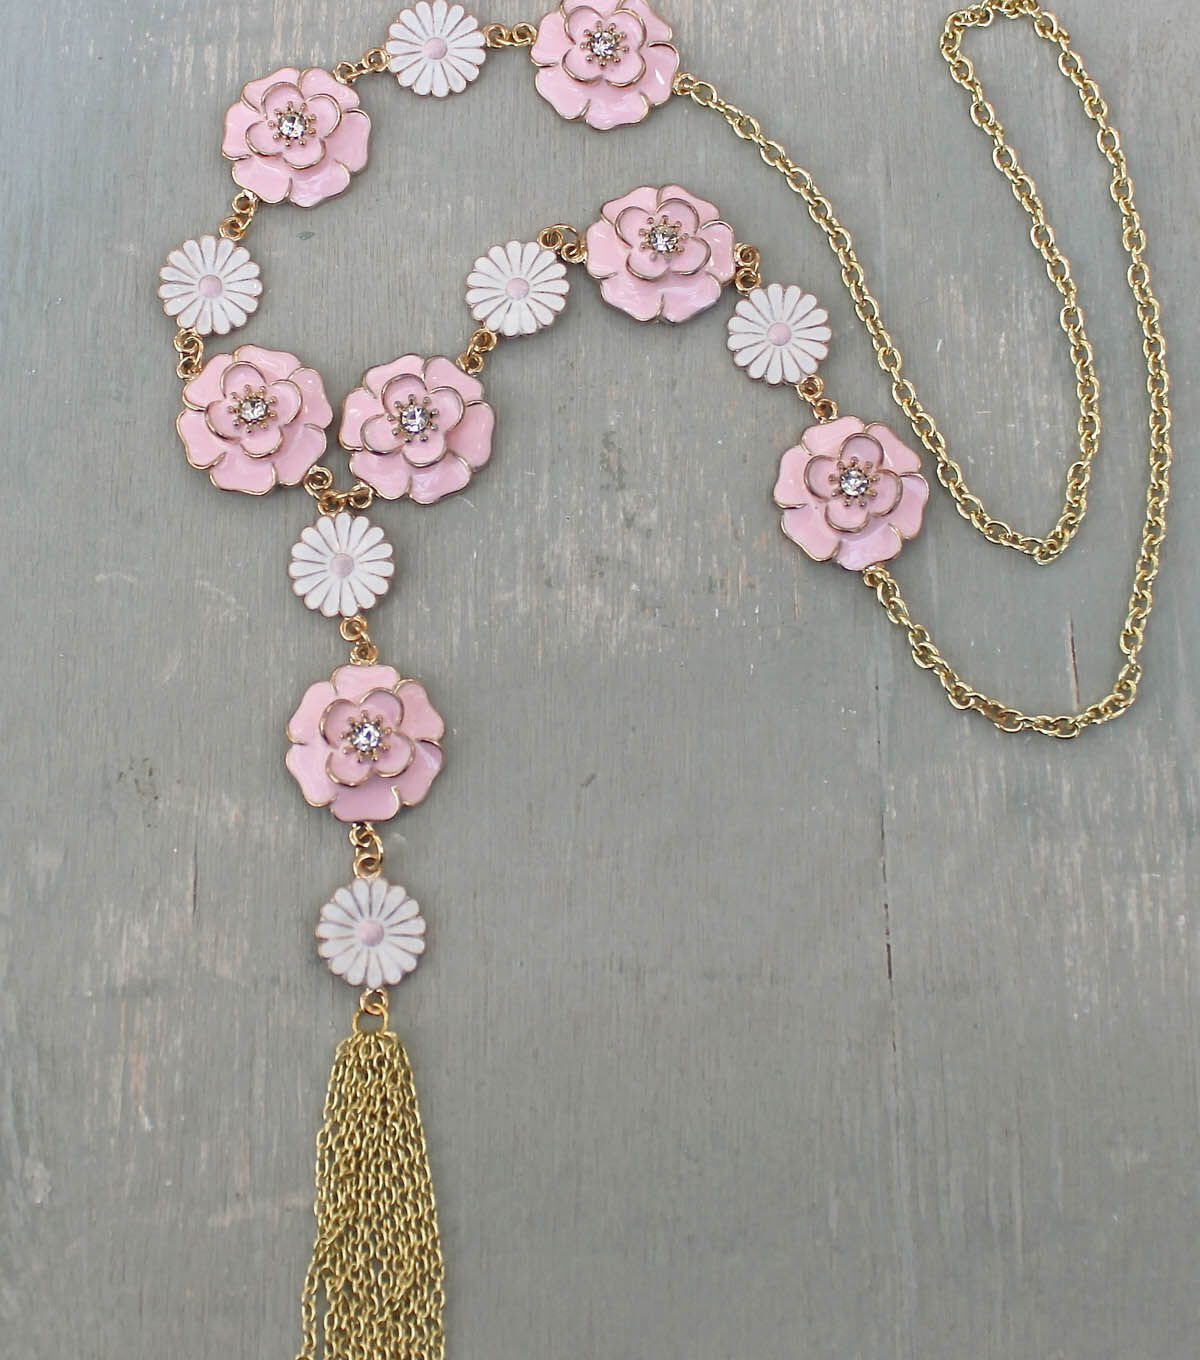 How To Make A Flower Child Necklace   Handmade Jewelry Design Ideas